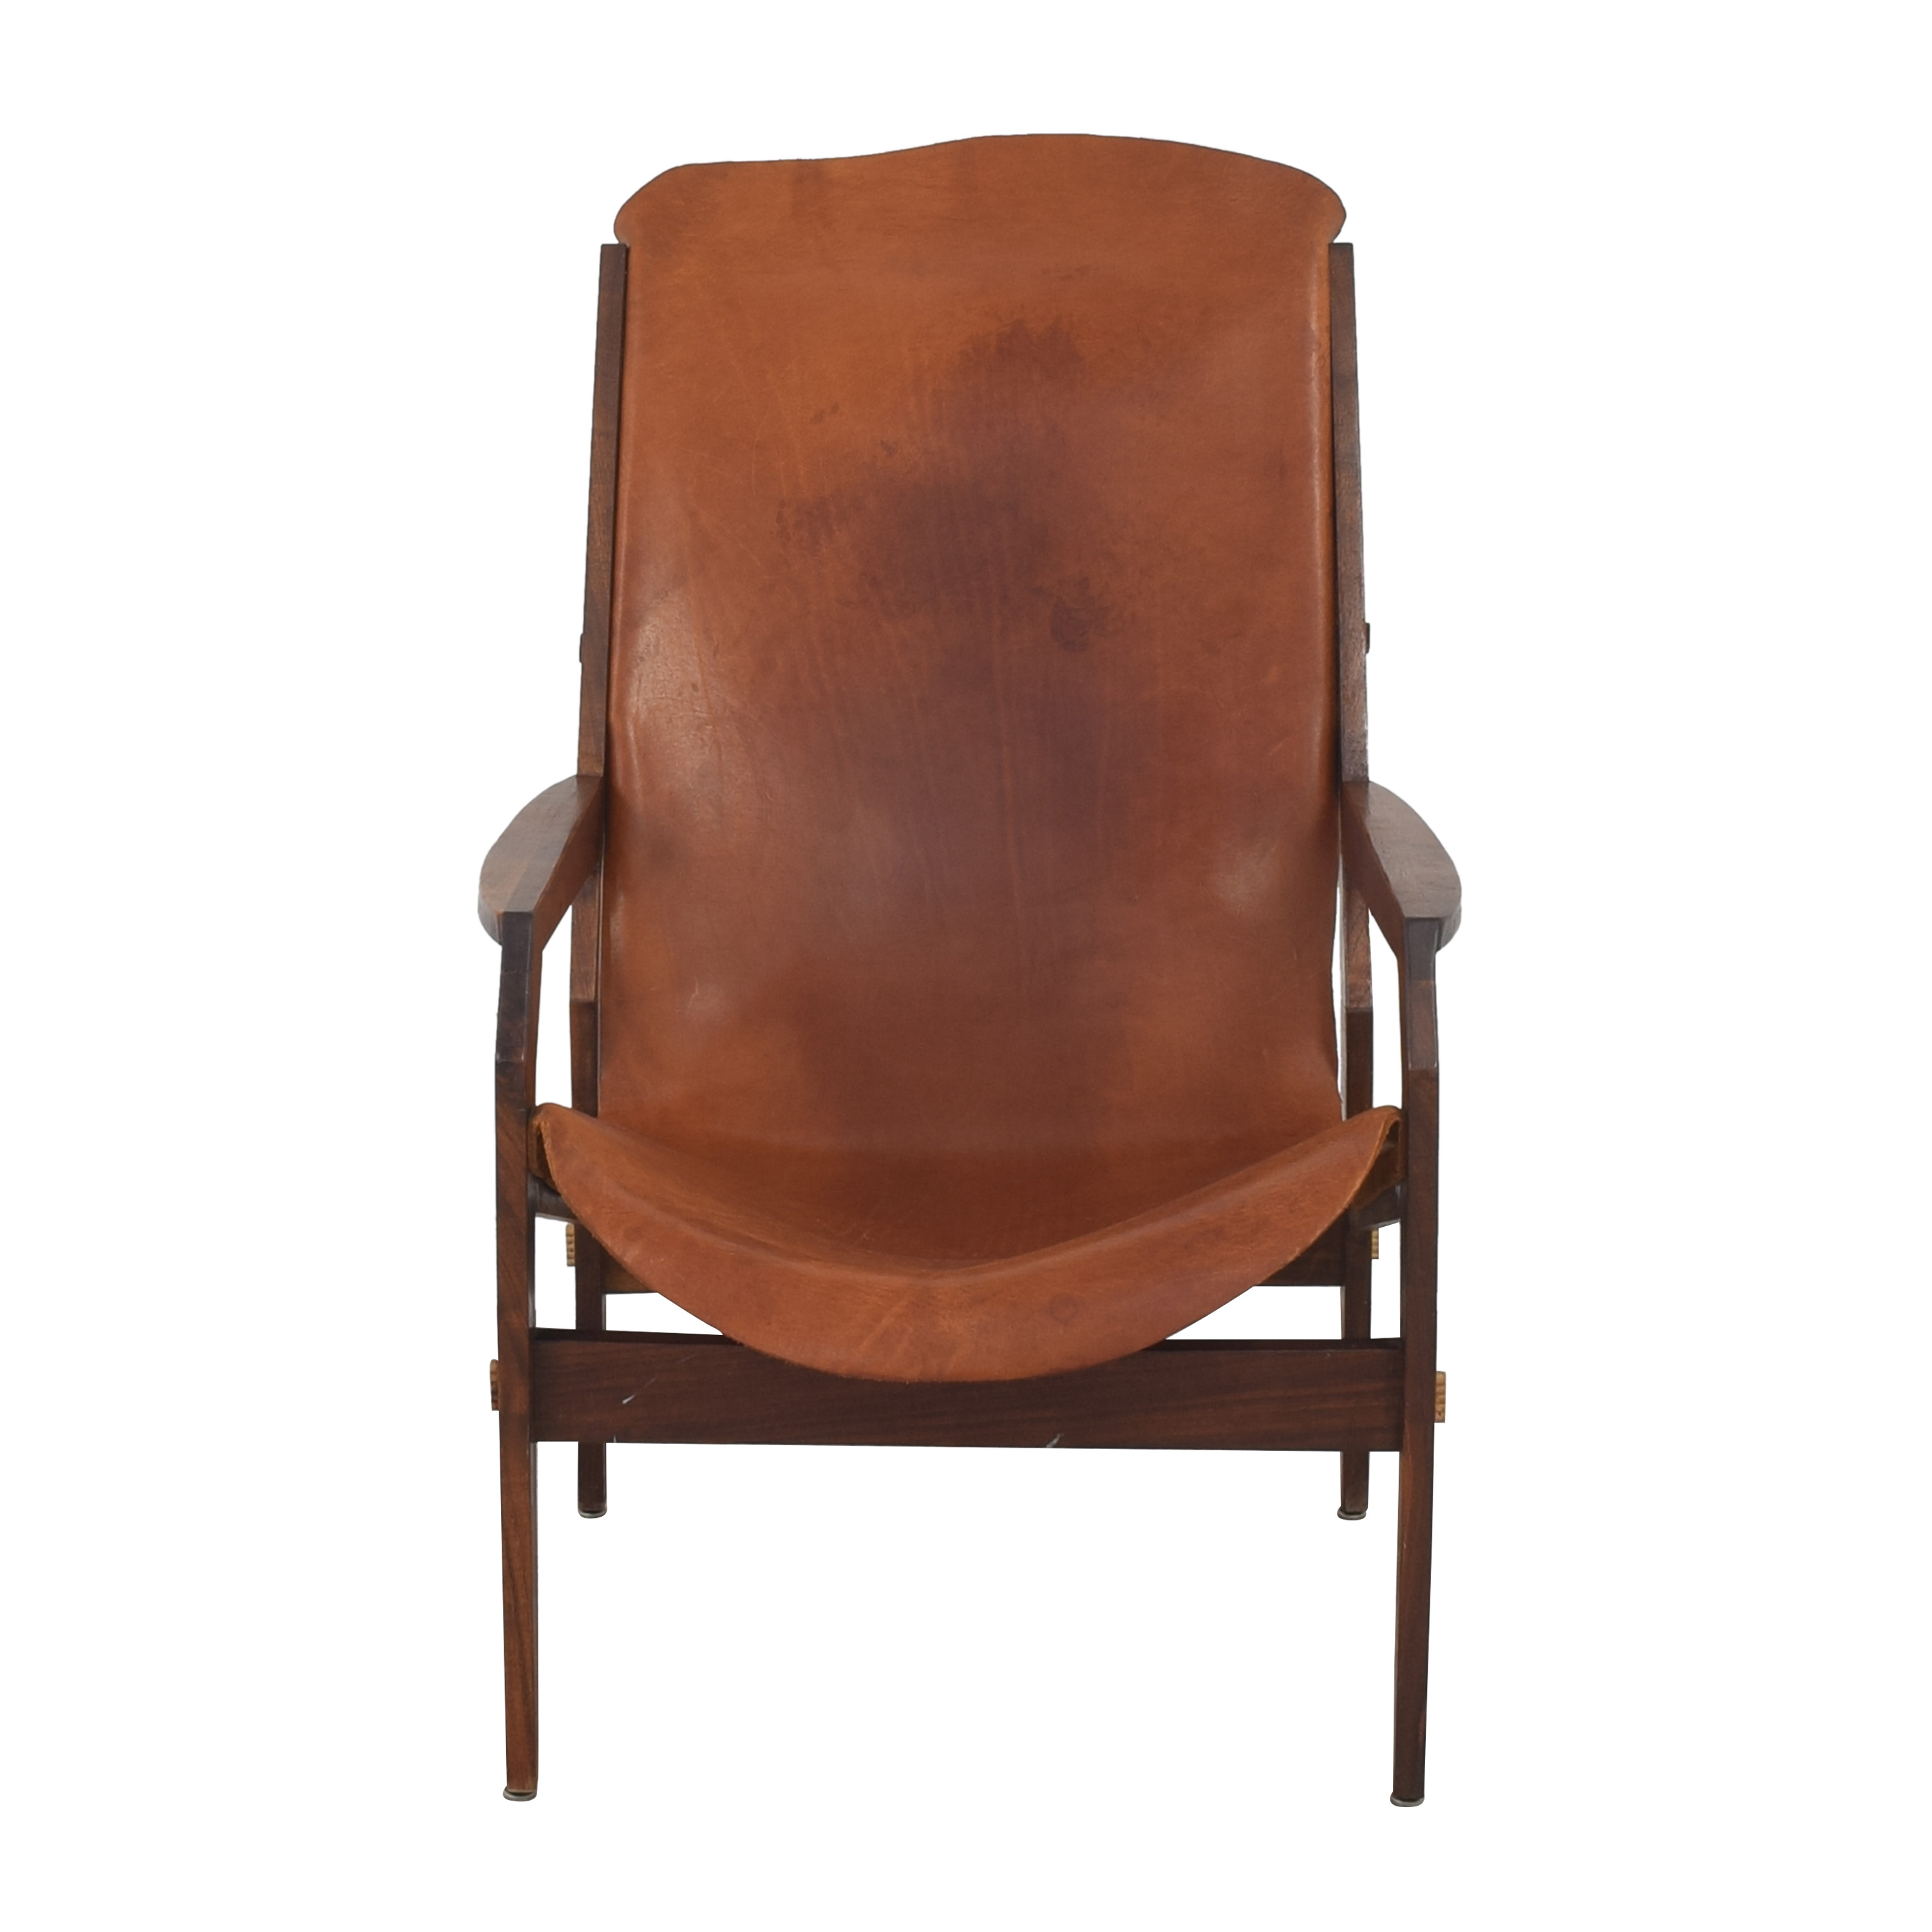 buy Etsy Etsy Stratis Sling Leather Lounge Chair online